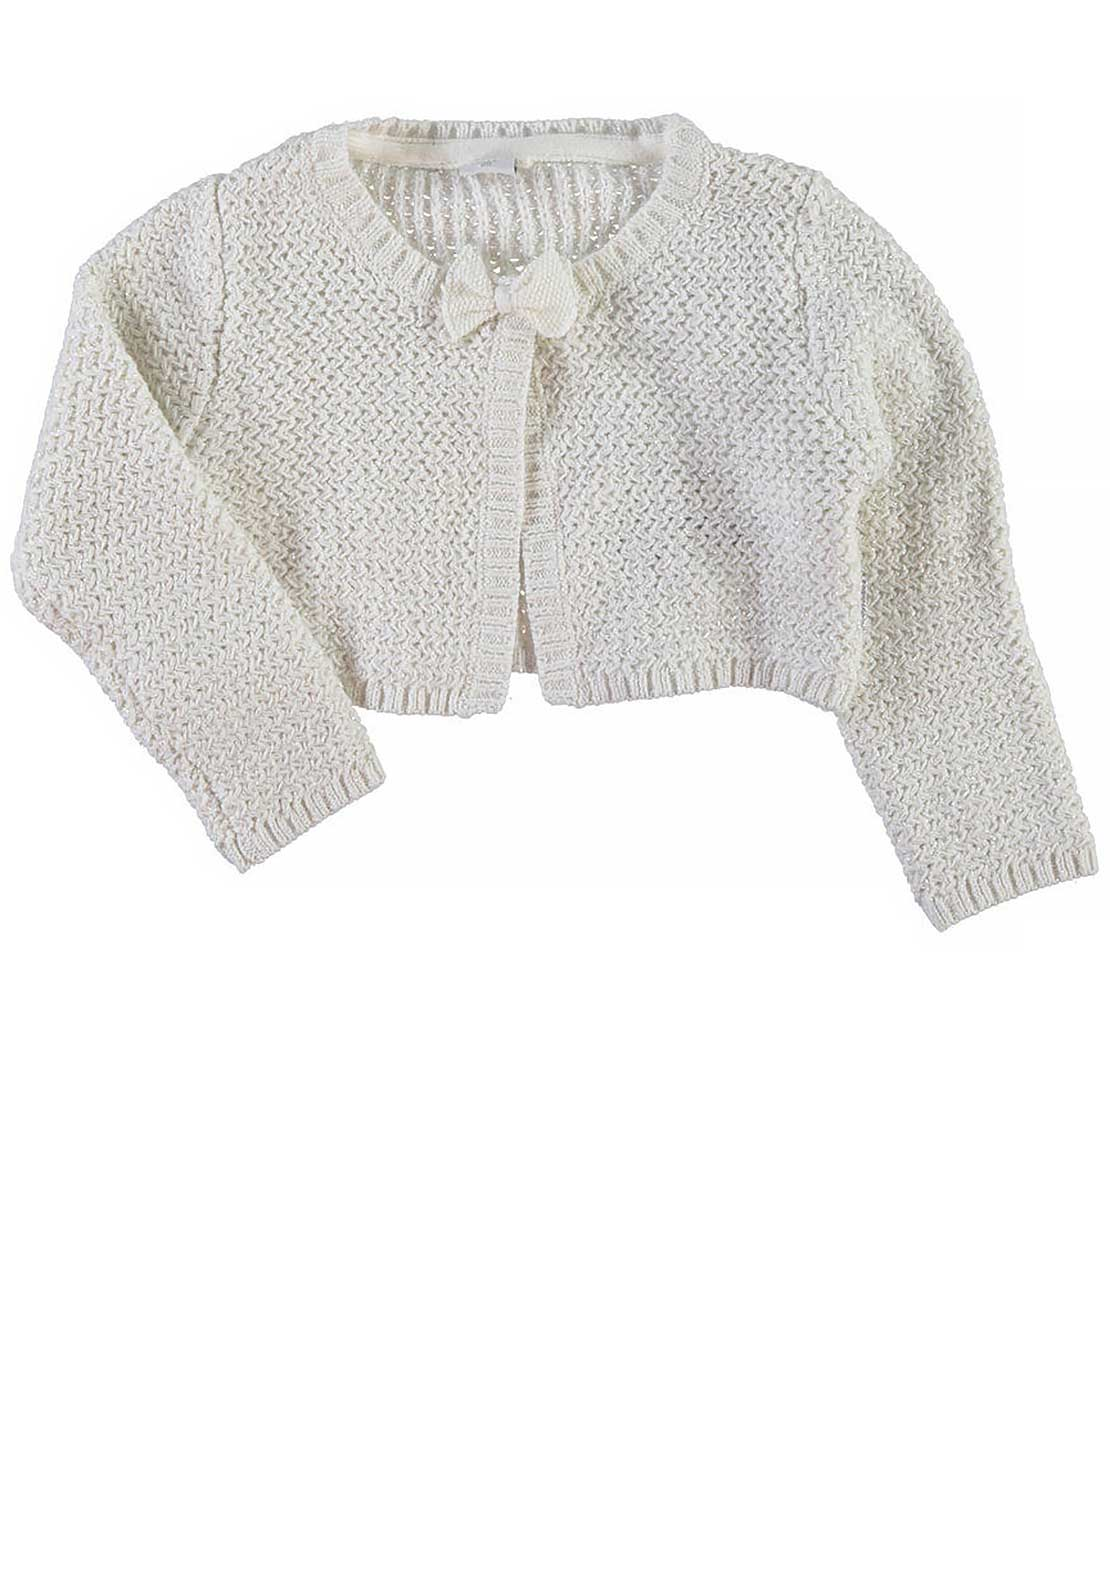 Name It Girls Pinella Knitted Bolero Cardigan, Vanilla Ice